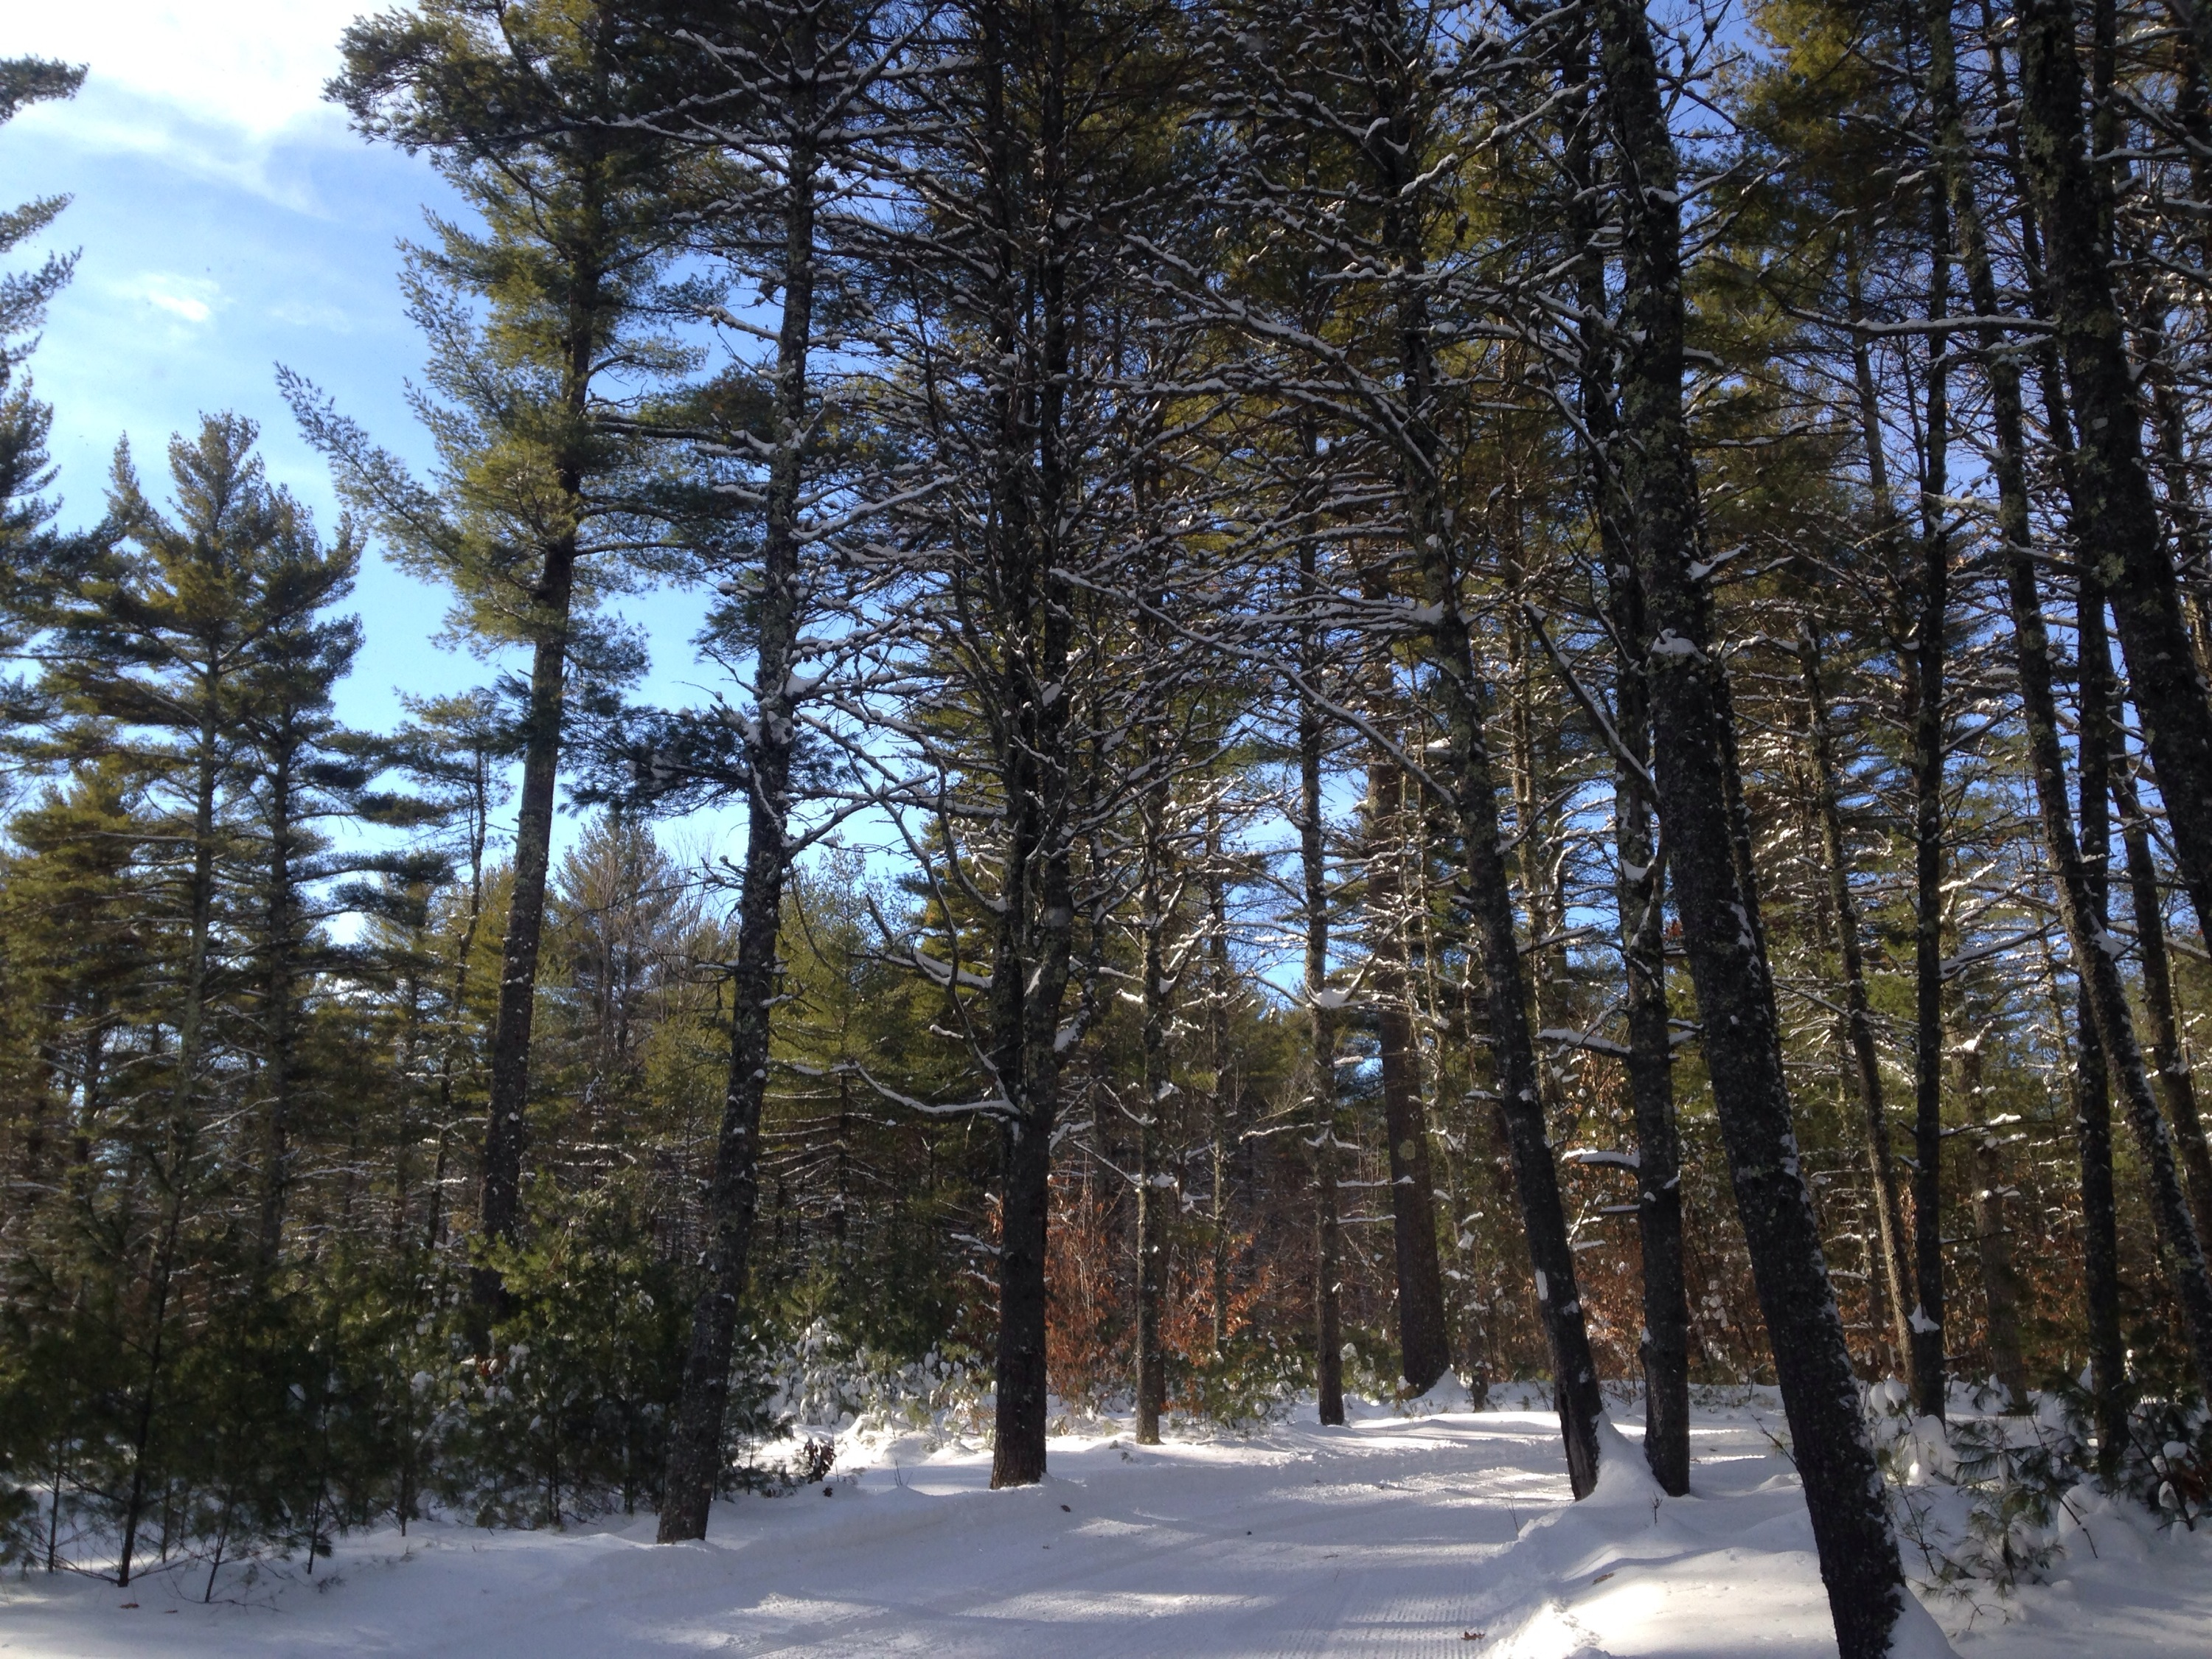 Libby Hill Forest Cross-Country Ski Trails, Gray, Maine